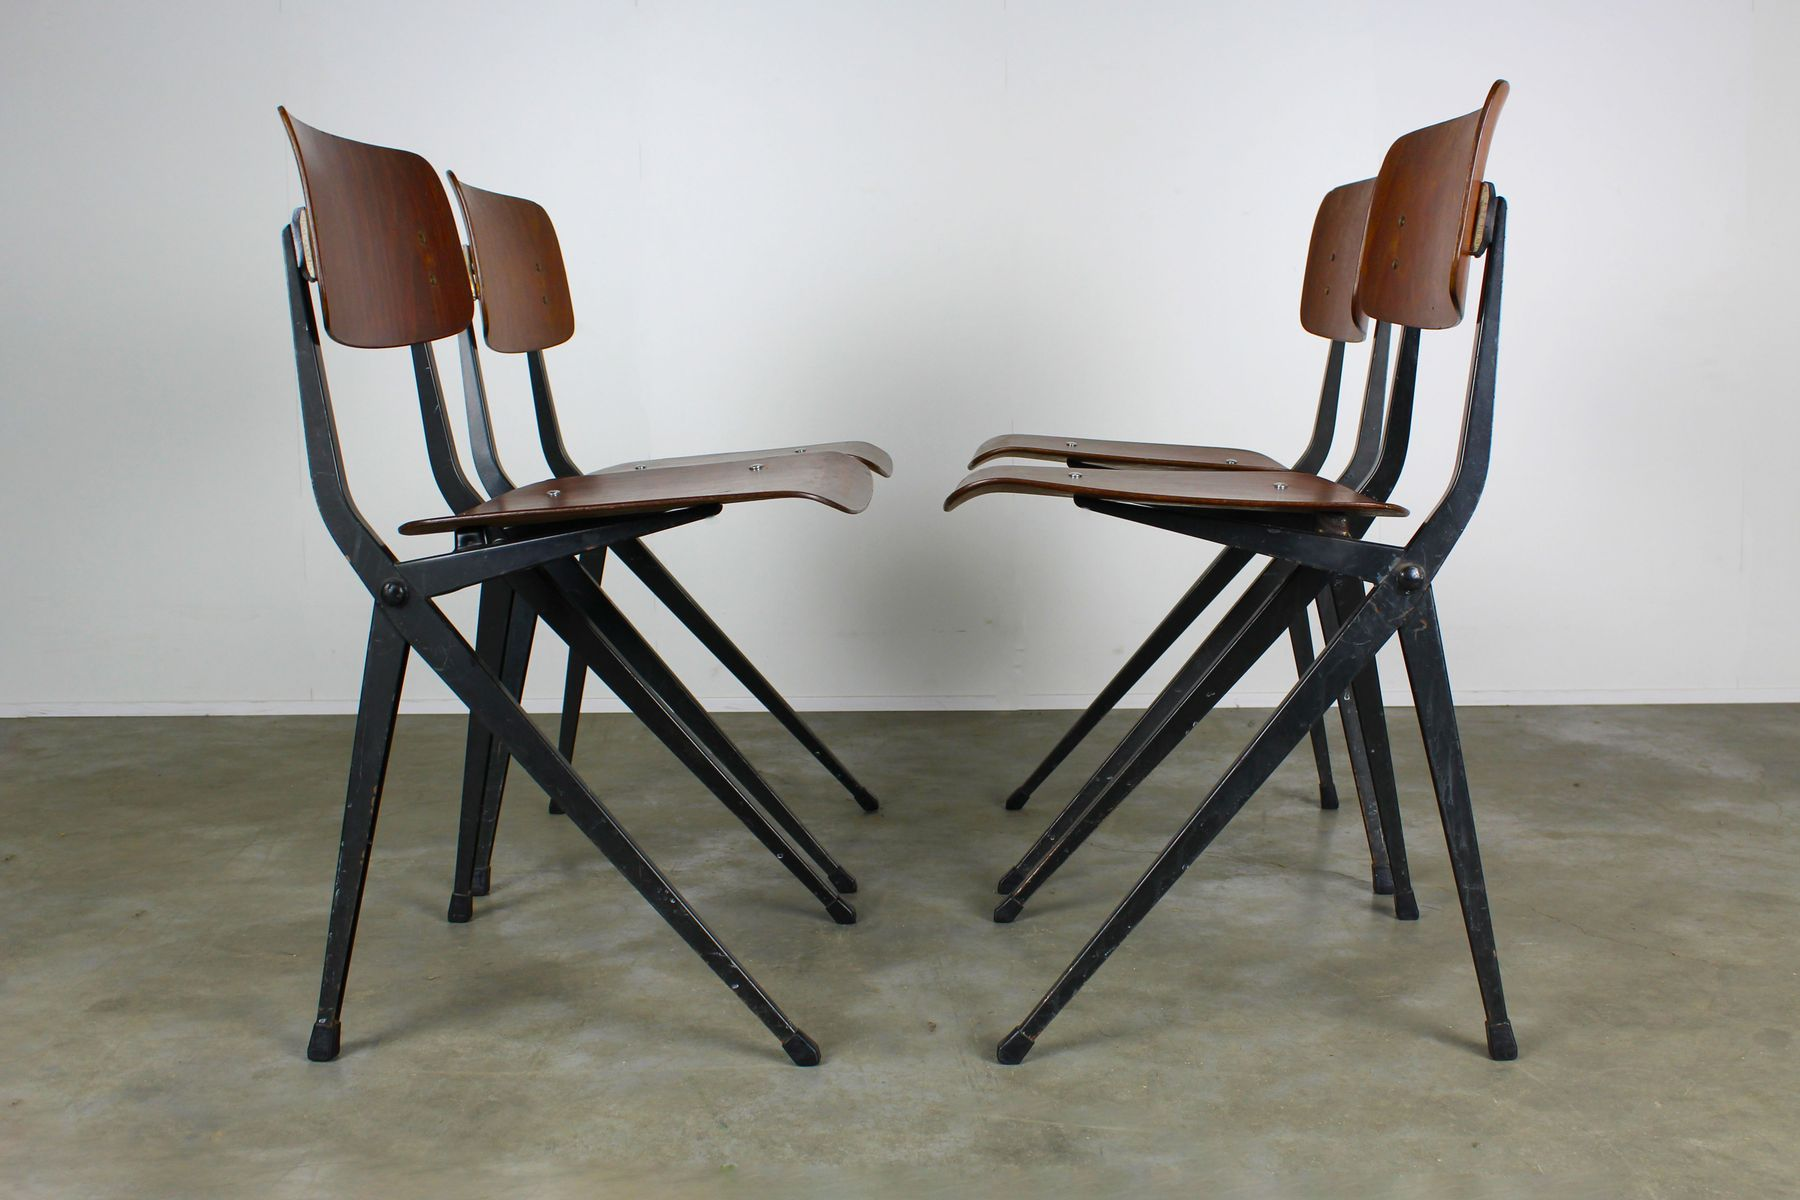 price per set. midcentury industrial dining chairs from marko set of  for sale